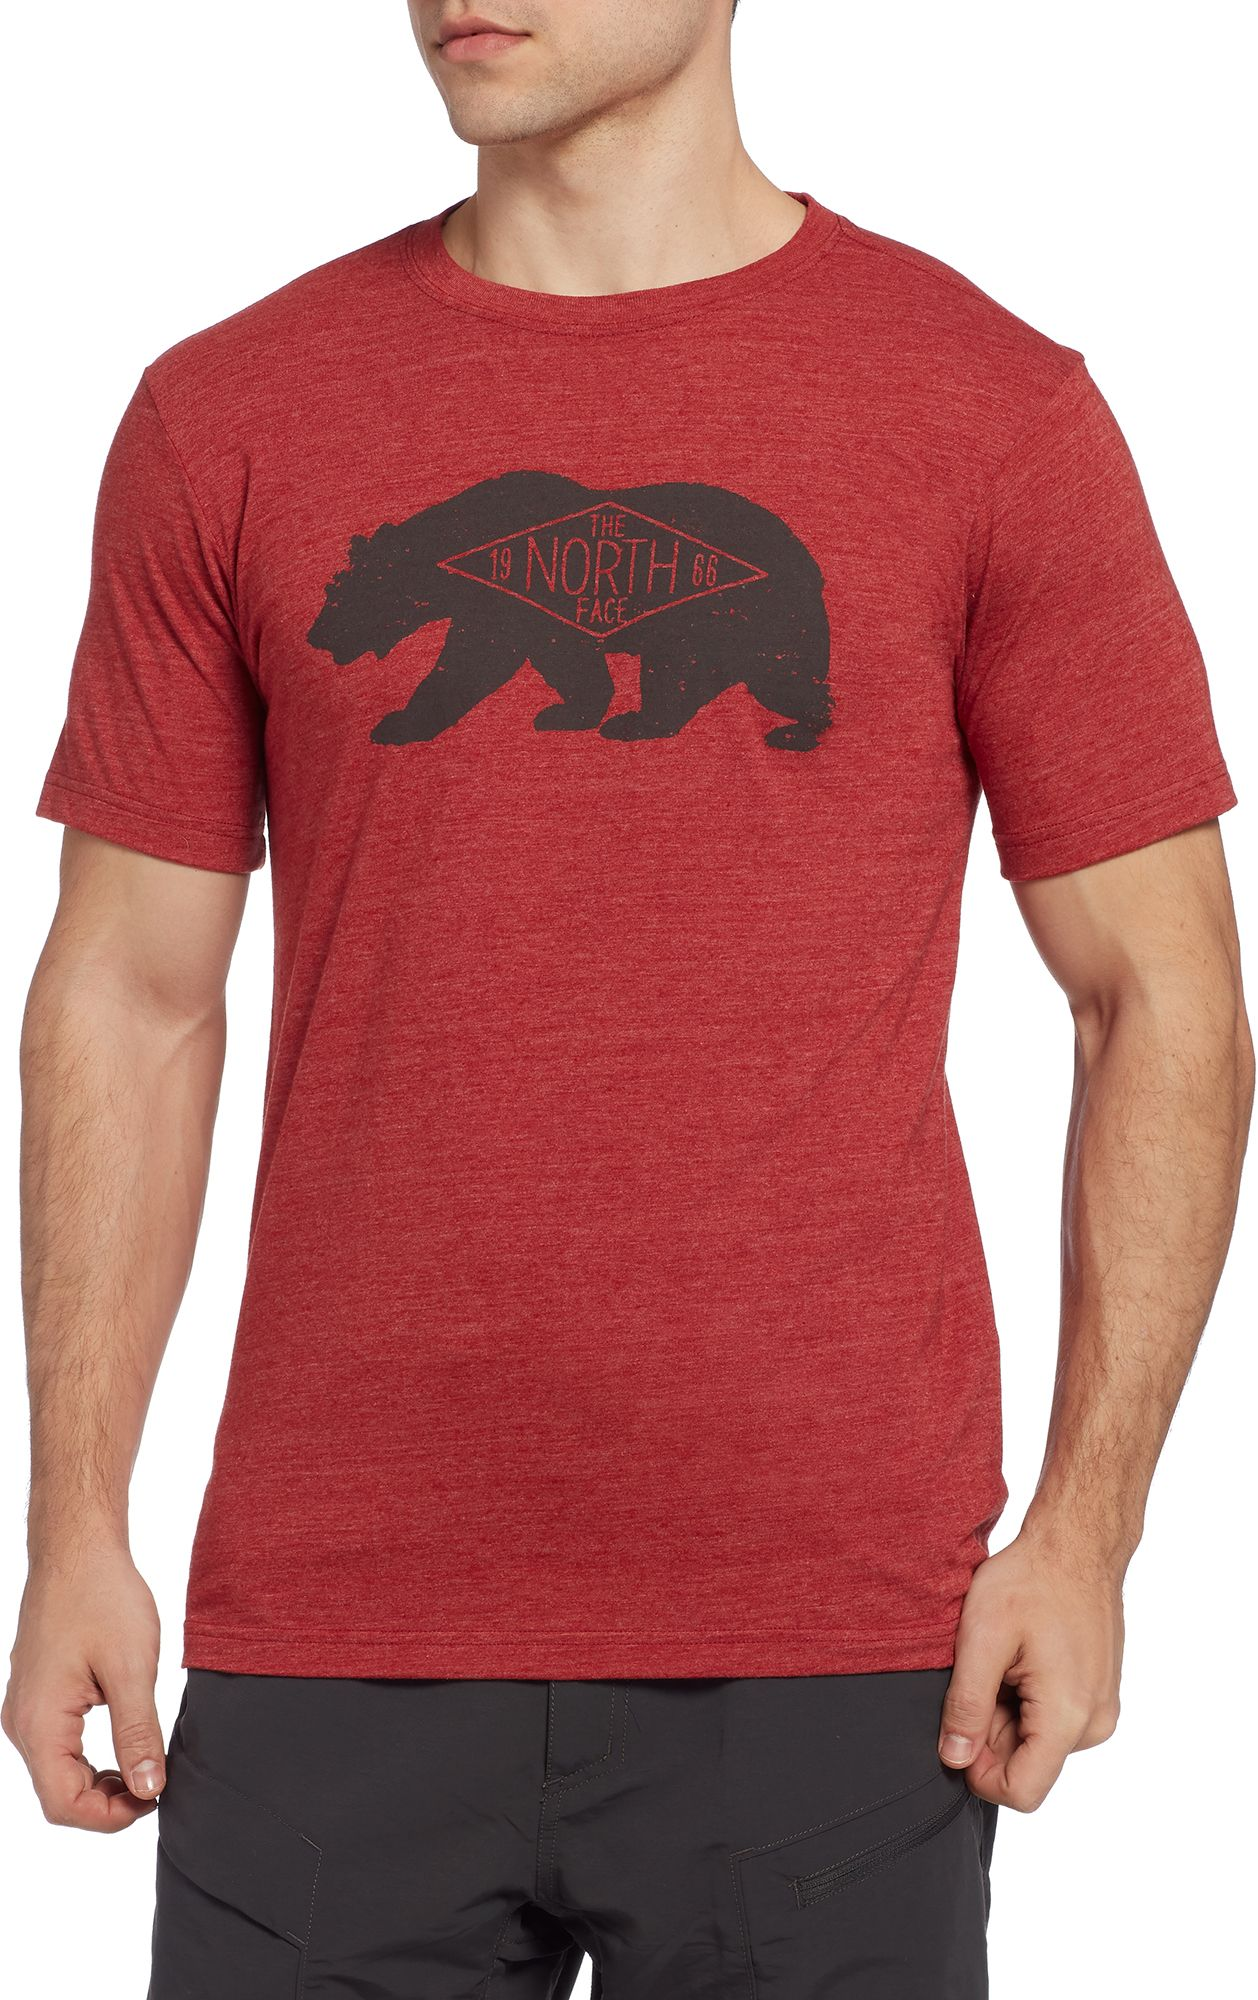 Product Image · The North Face Men's Heritage Bear T-Shirt. Cardinal Red  Heather; Pompeianredhtr/Asphaltgry